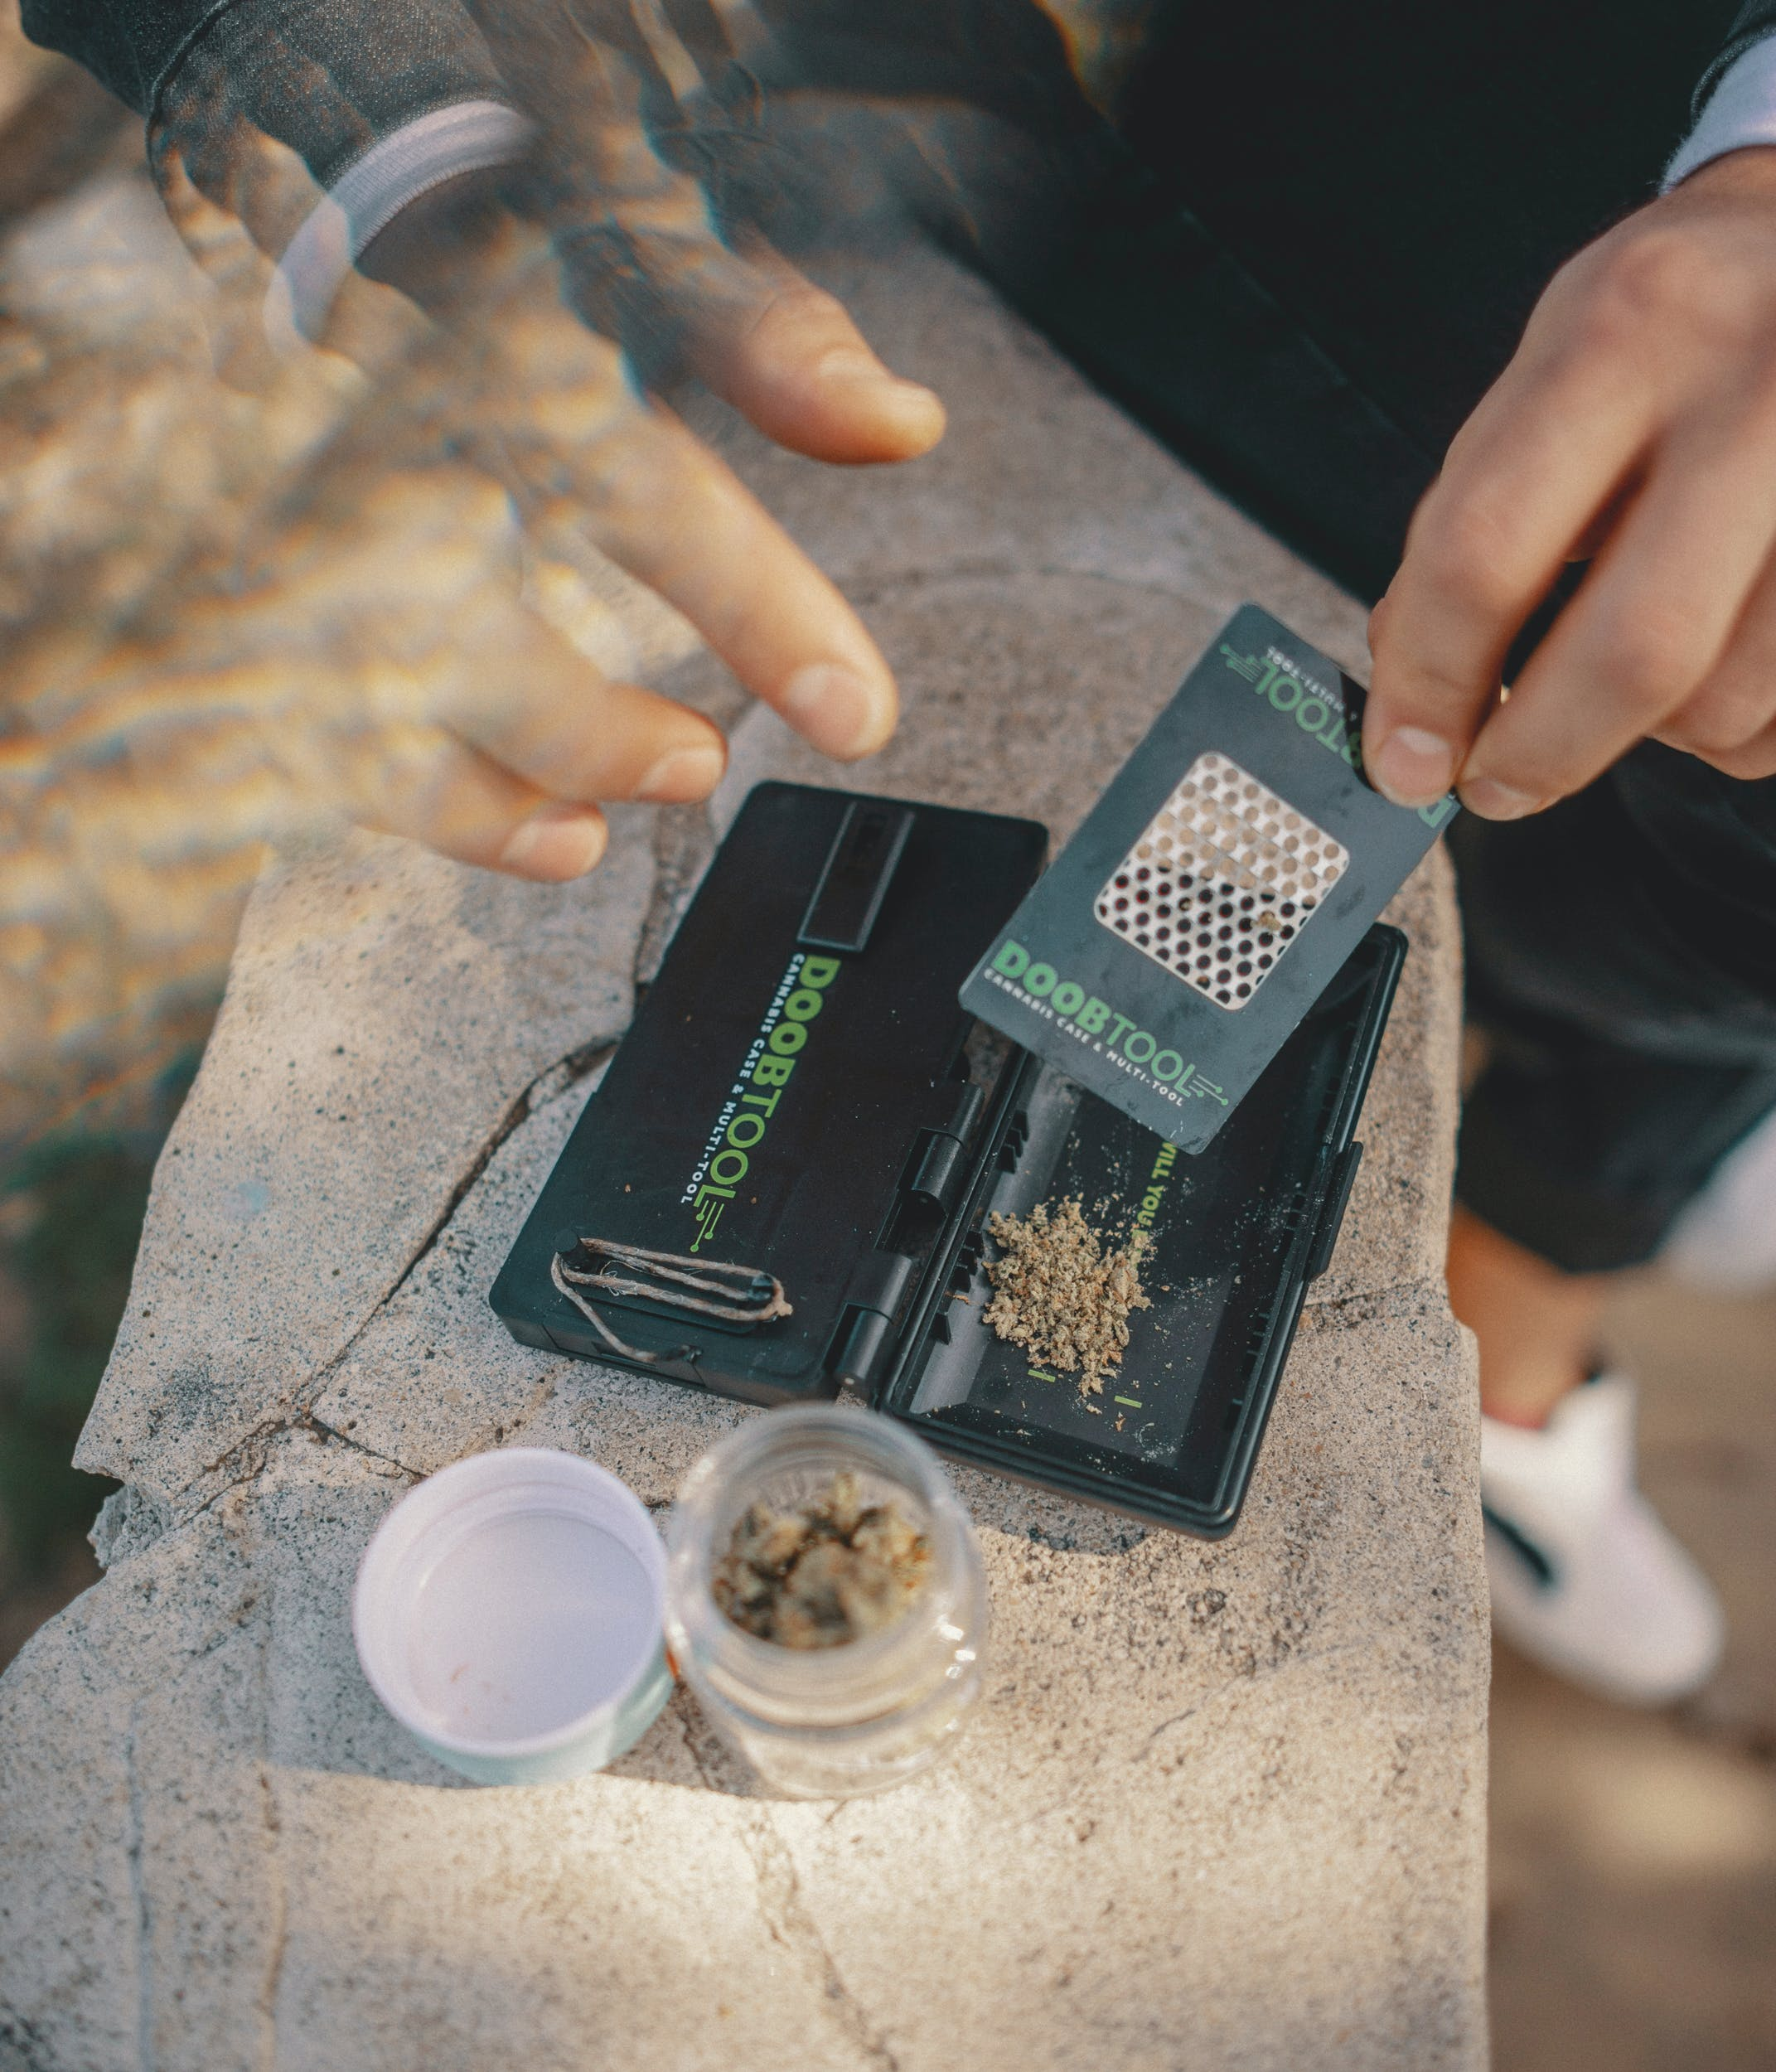 Best Weed Gadgets Doobtool 38 These Are The Best Weed Gadgets For Cannabis Enthusiasts Everywhere